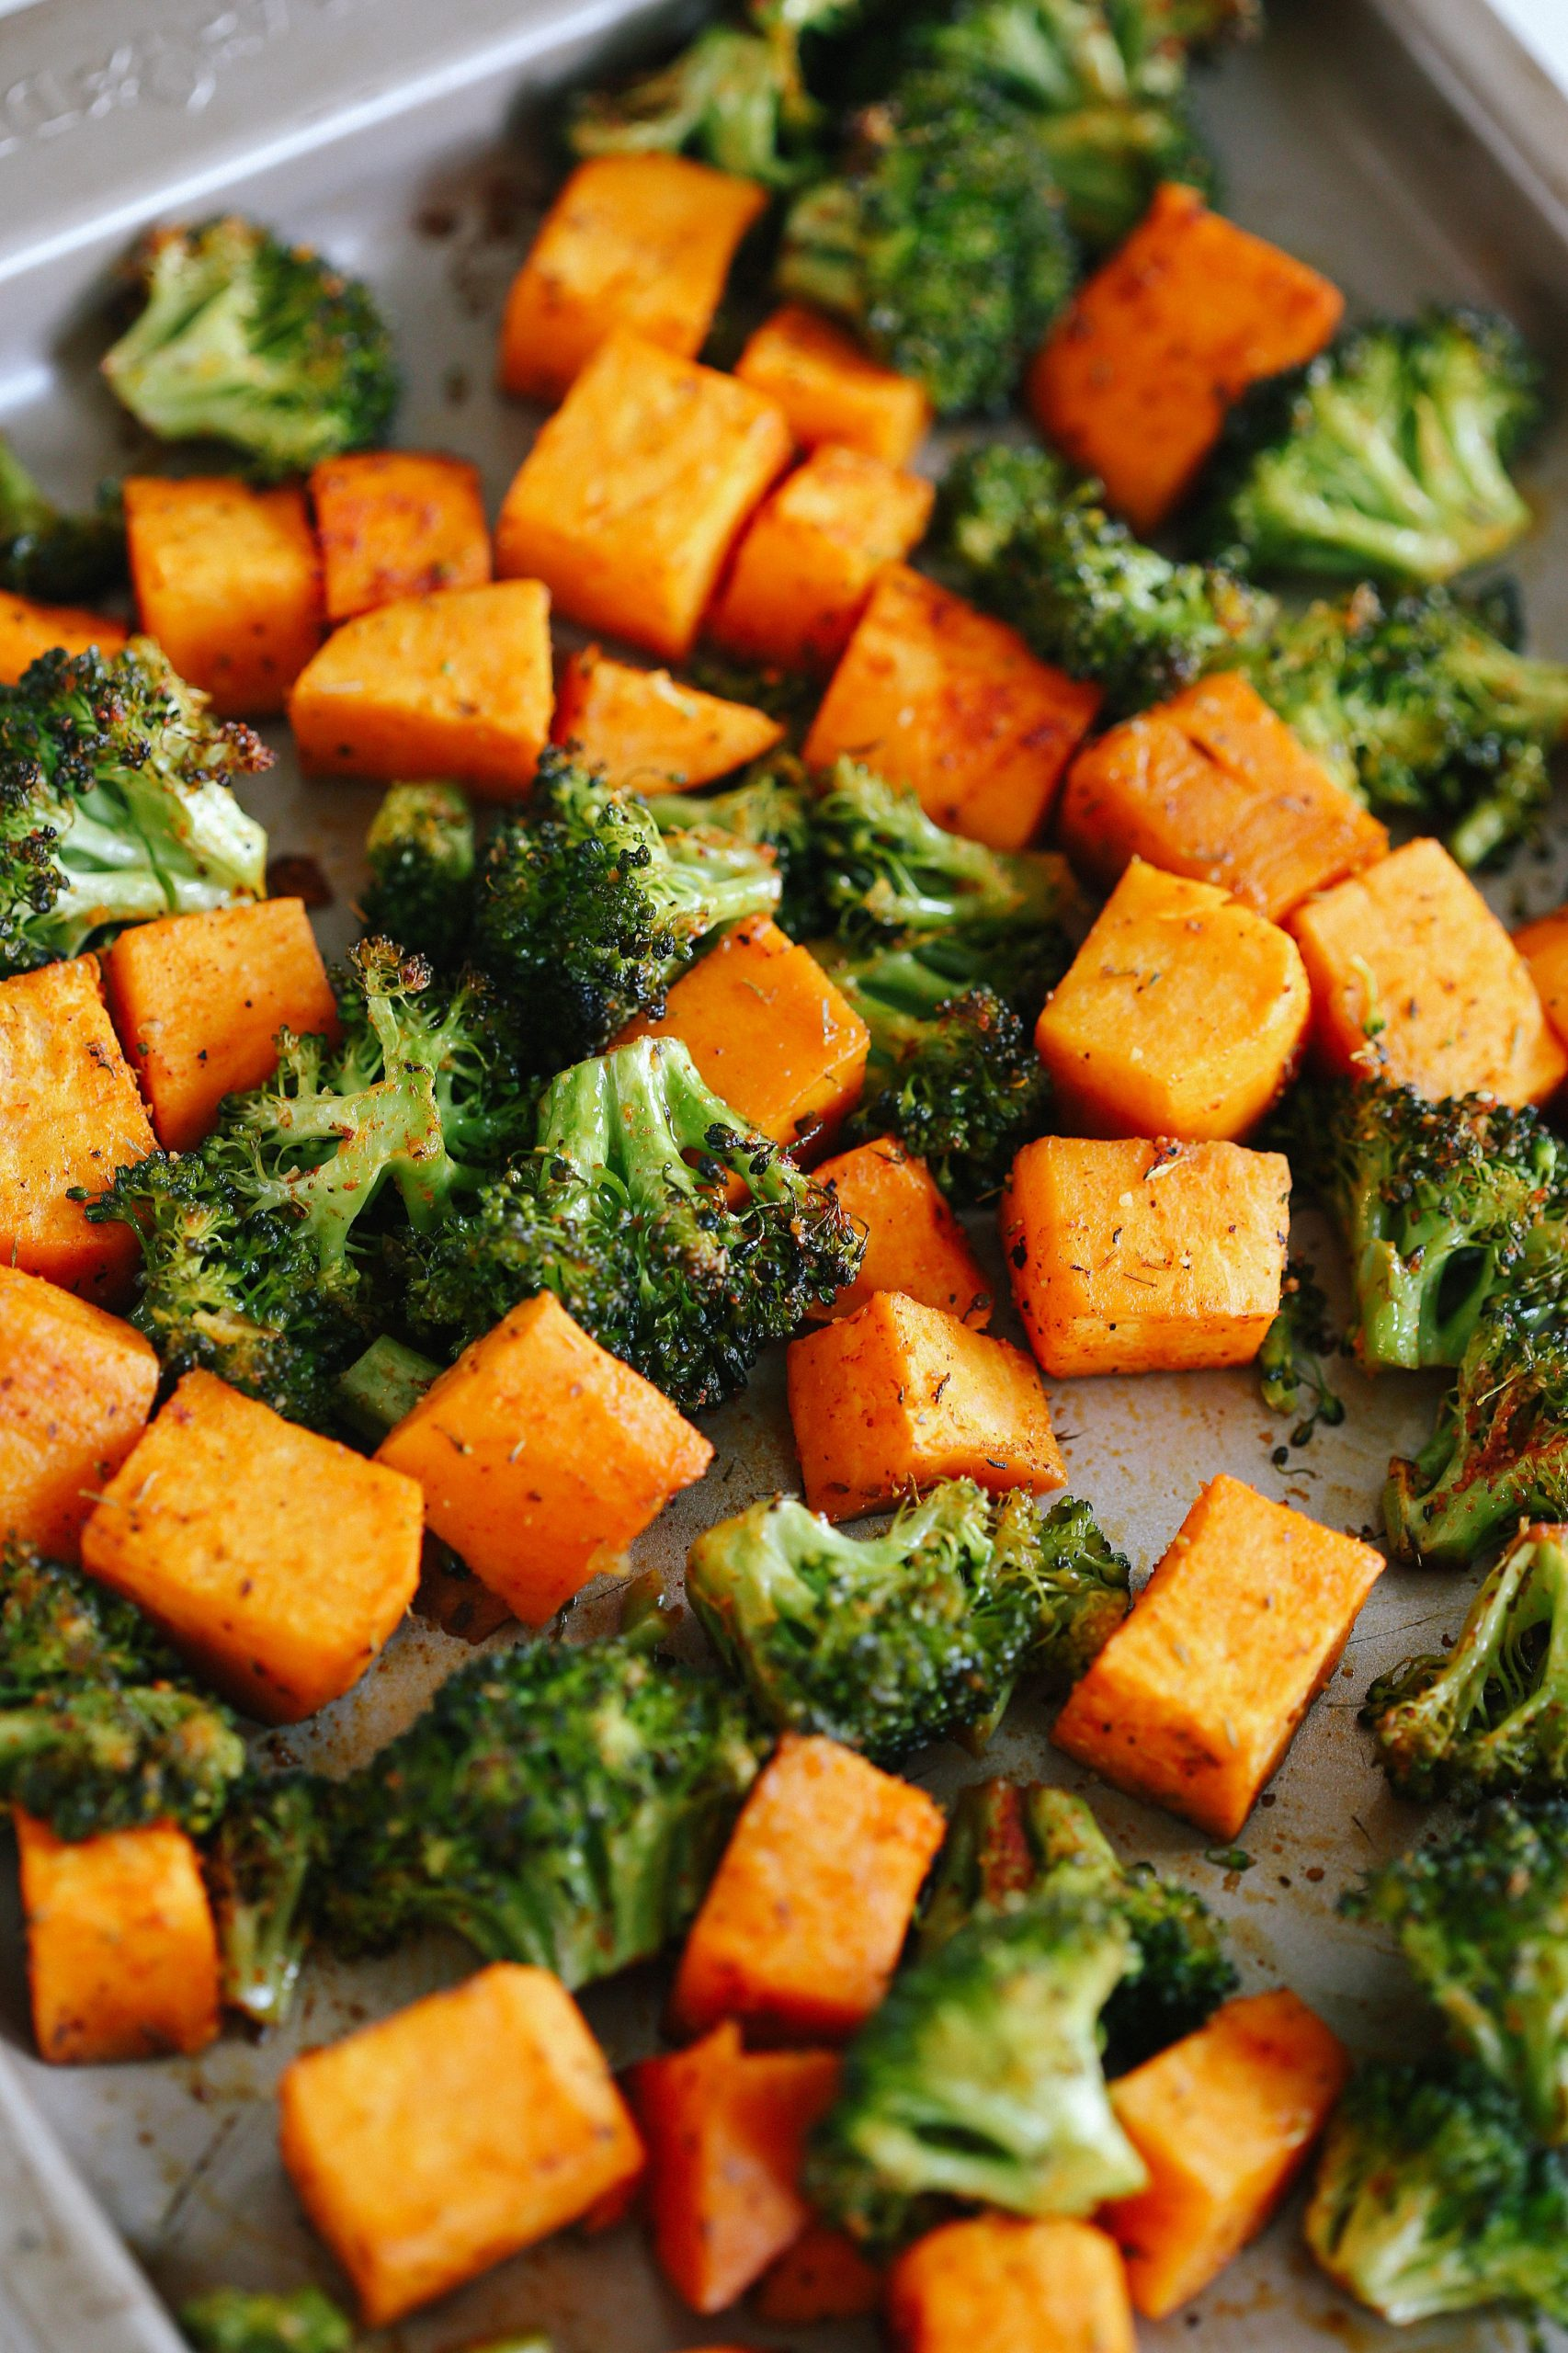 Perfectly Roasted Broccoli & Sweet Potatoes